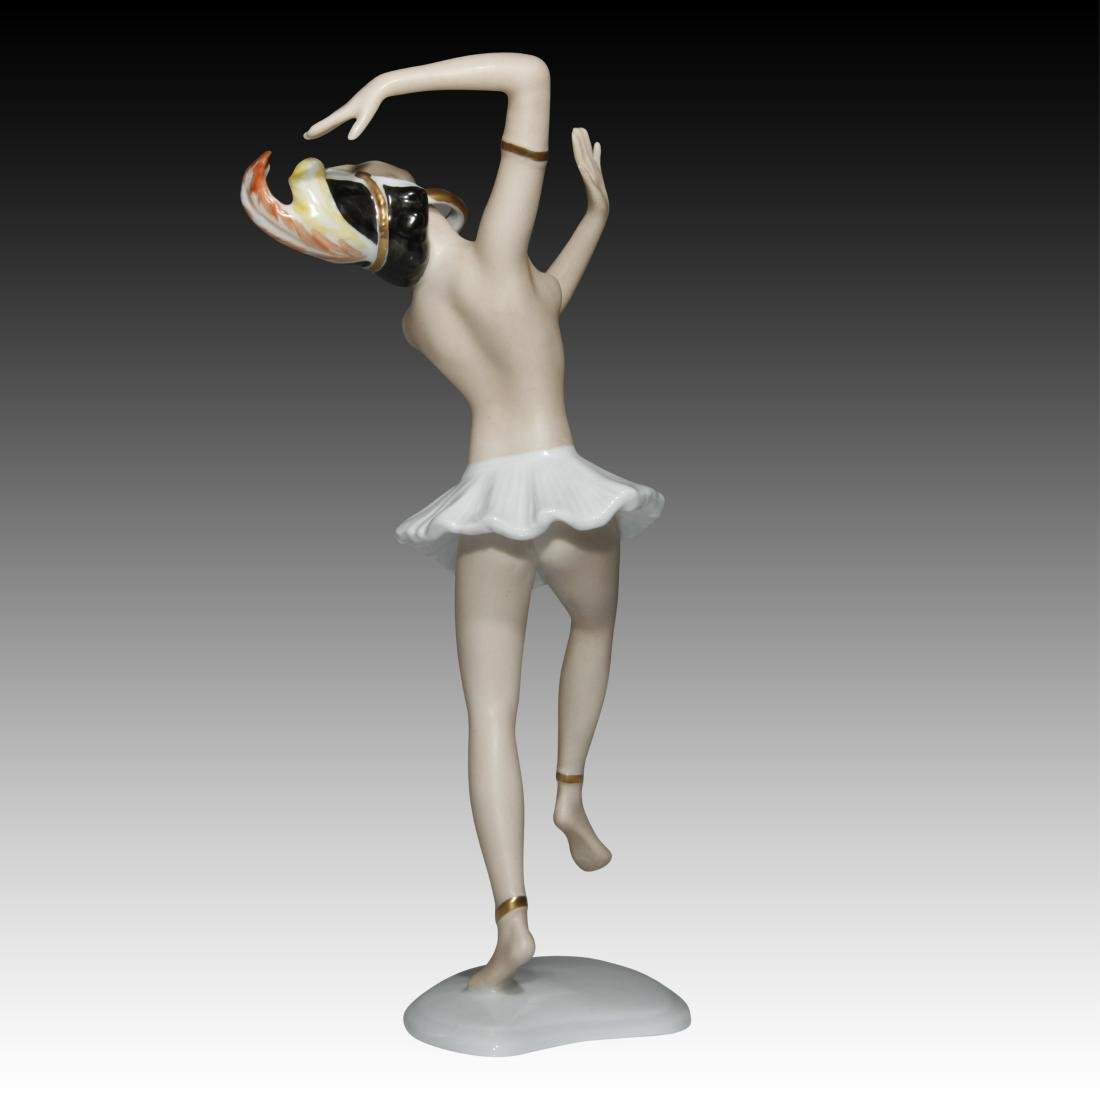 Wallendorf Semi-nude Dancer Figurine - 3